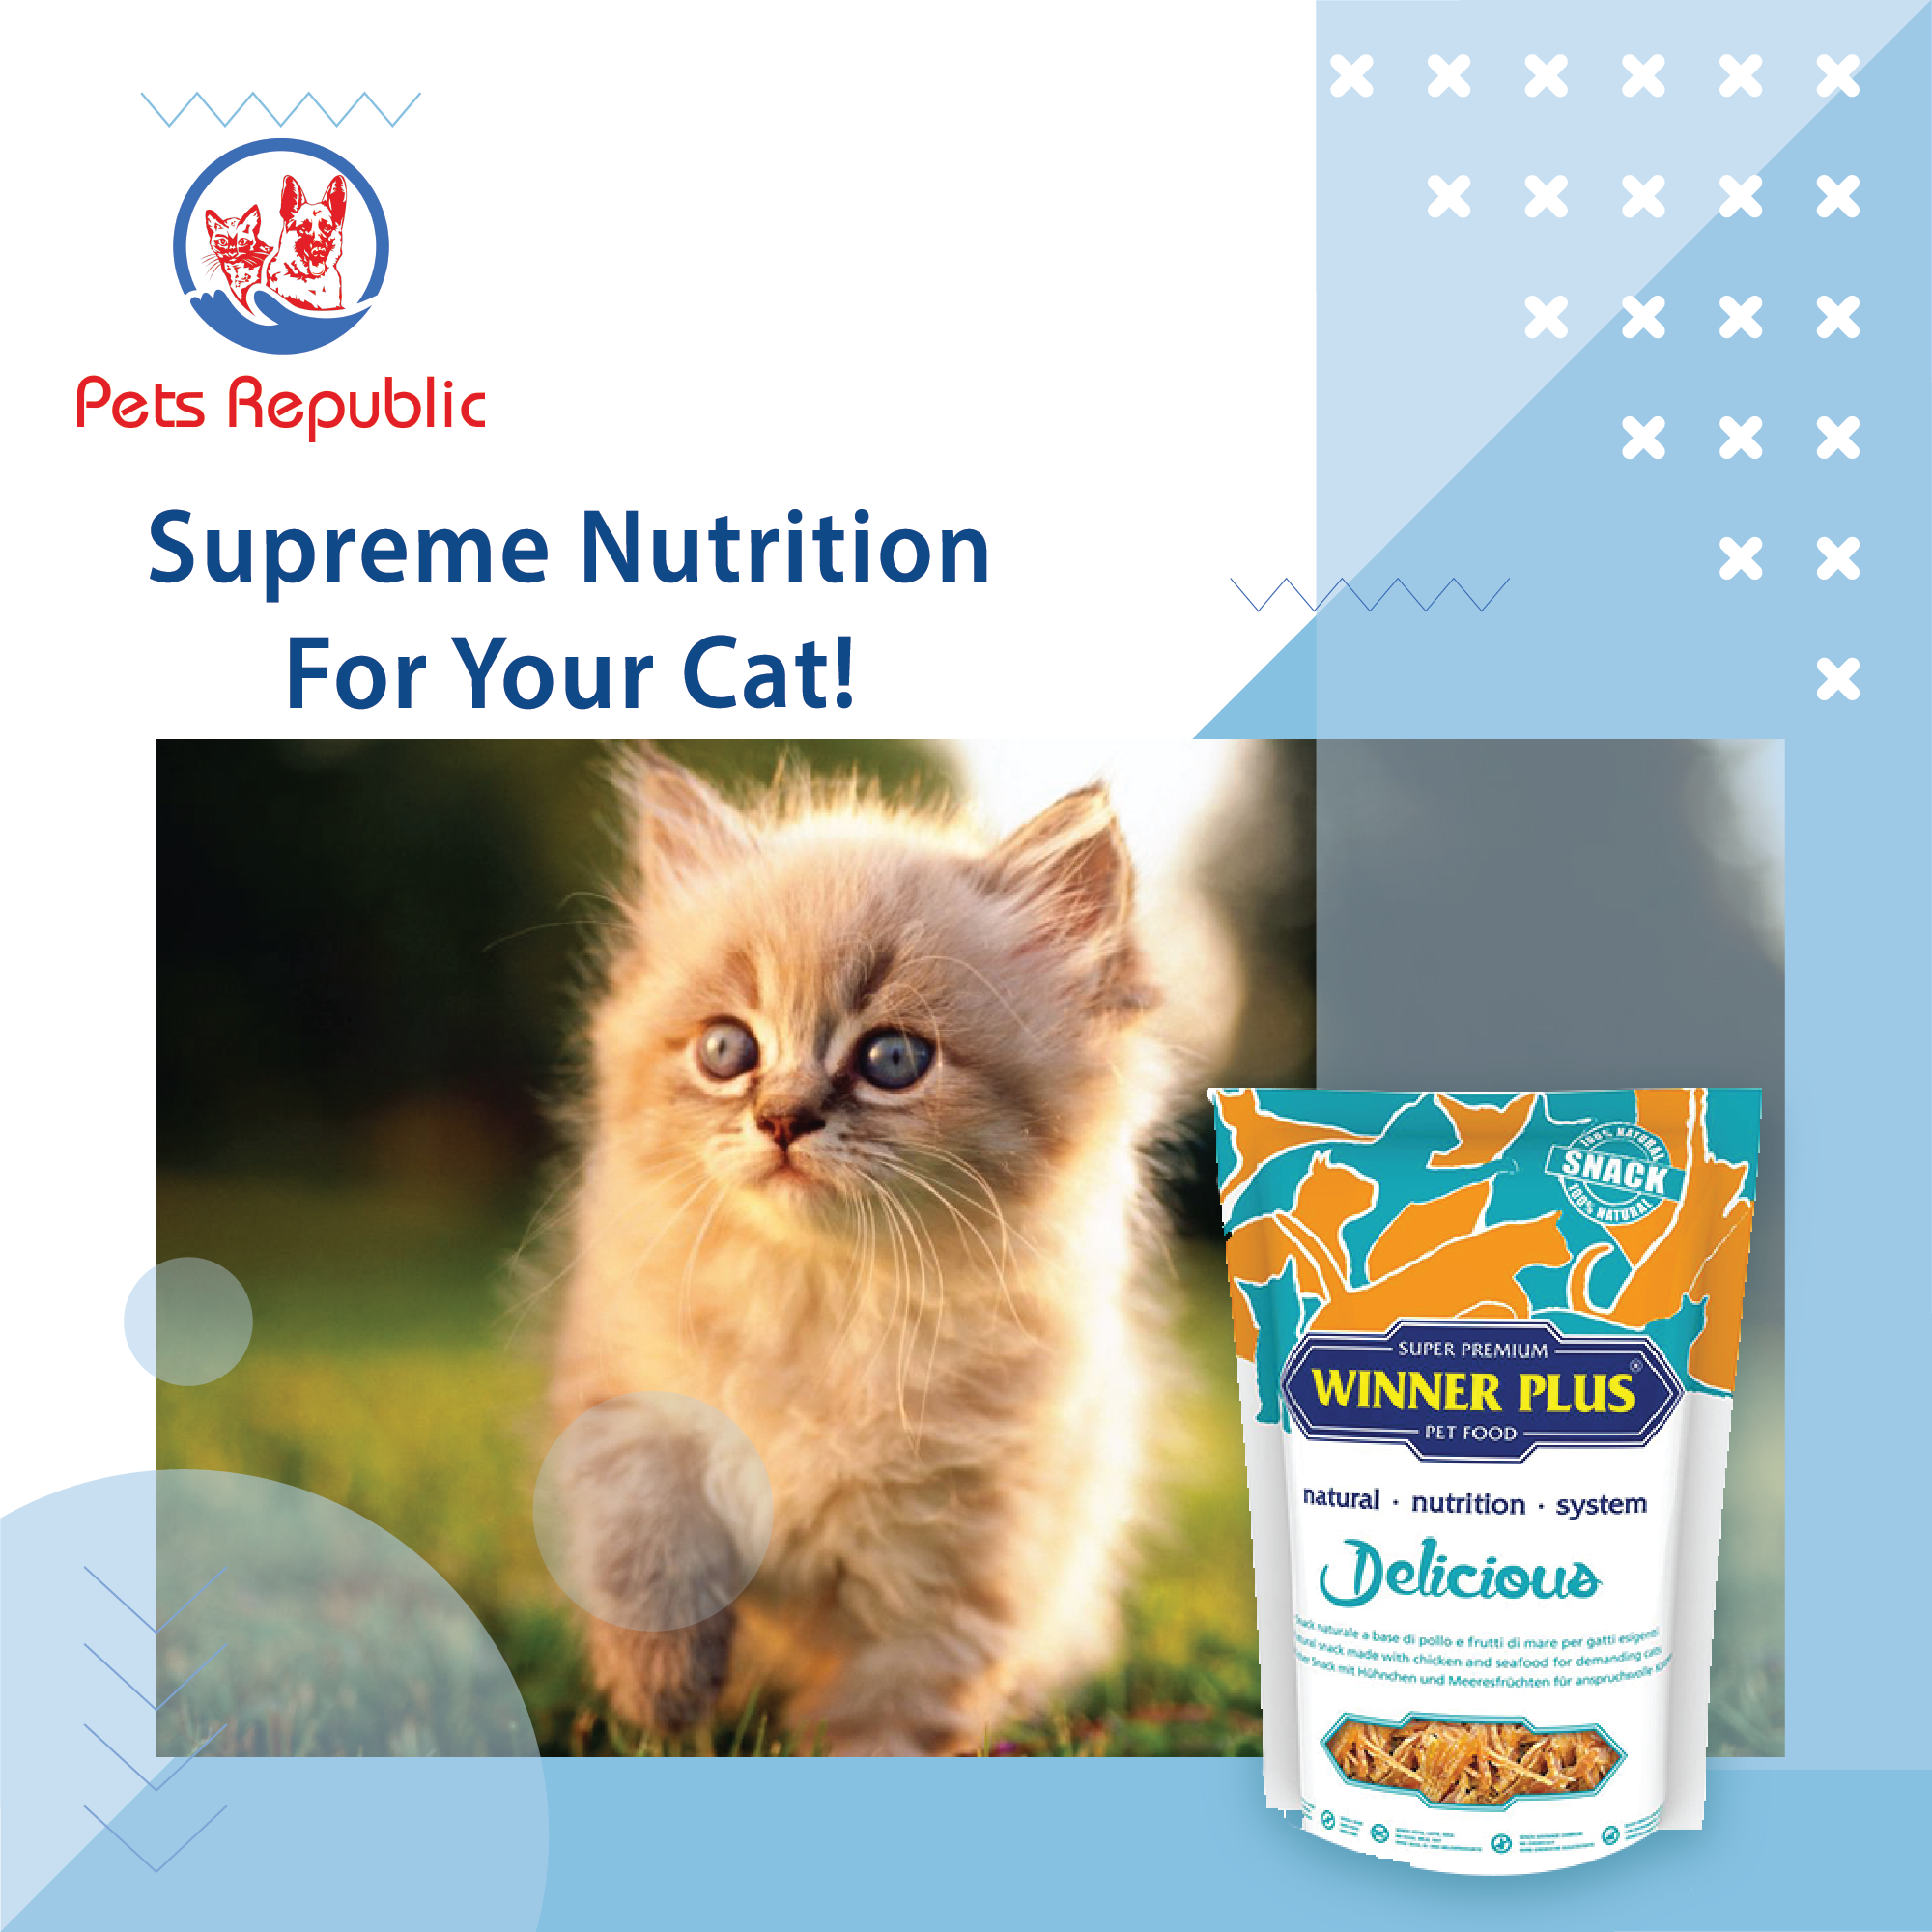 Winner Plus Delicious Cat Food 100g In 2020 Food Animals Cat Food Natural Nutrition